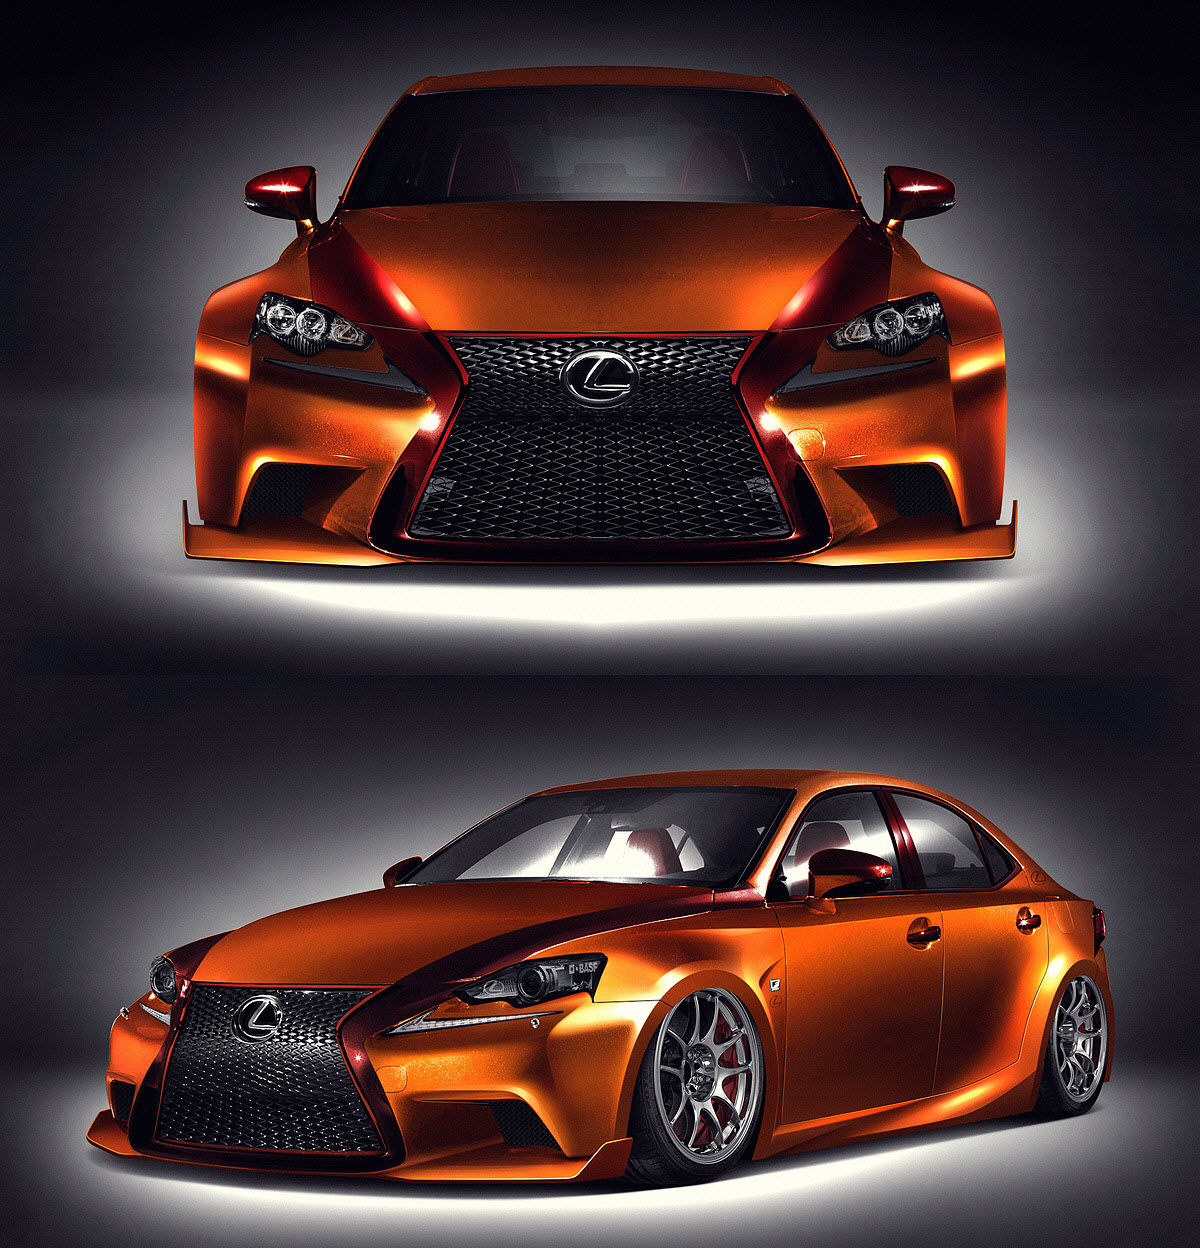 2013 sema show fan created 2014 lexus is 350 to debut along with flurry of custom cars. Black Bedroom Furniture Sets. Home Design Ideas